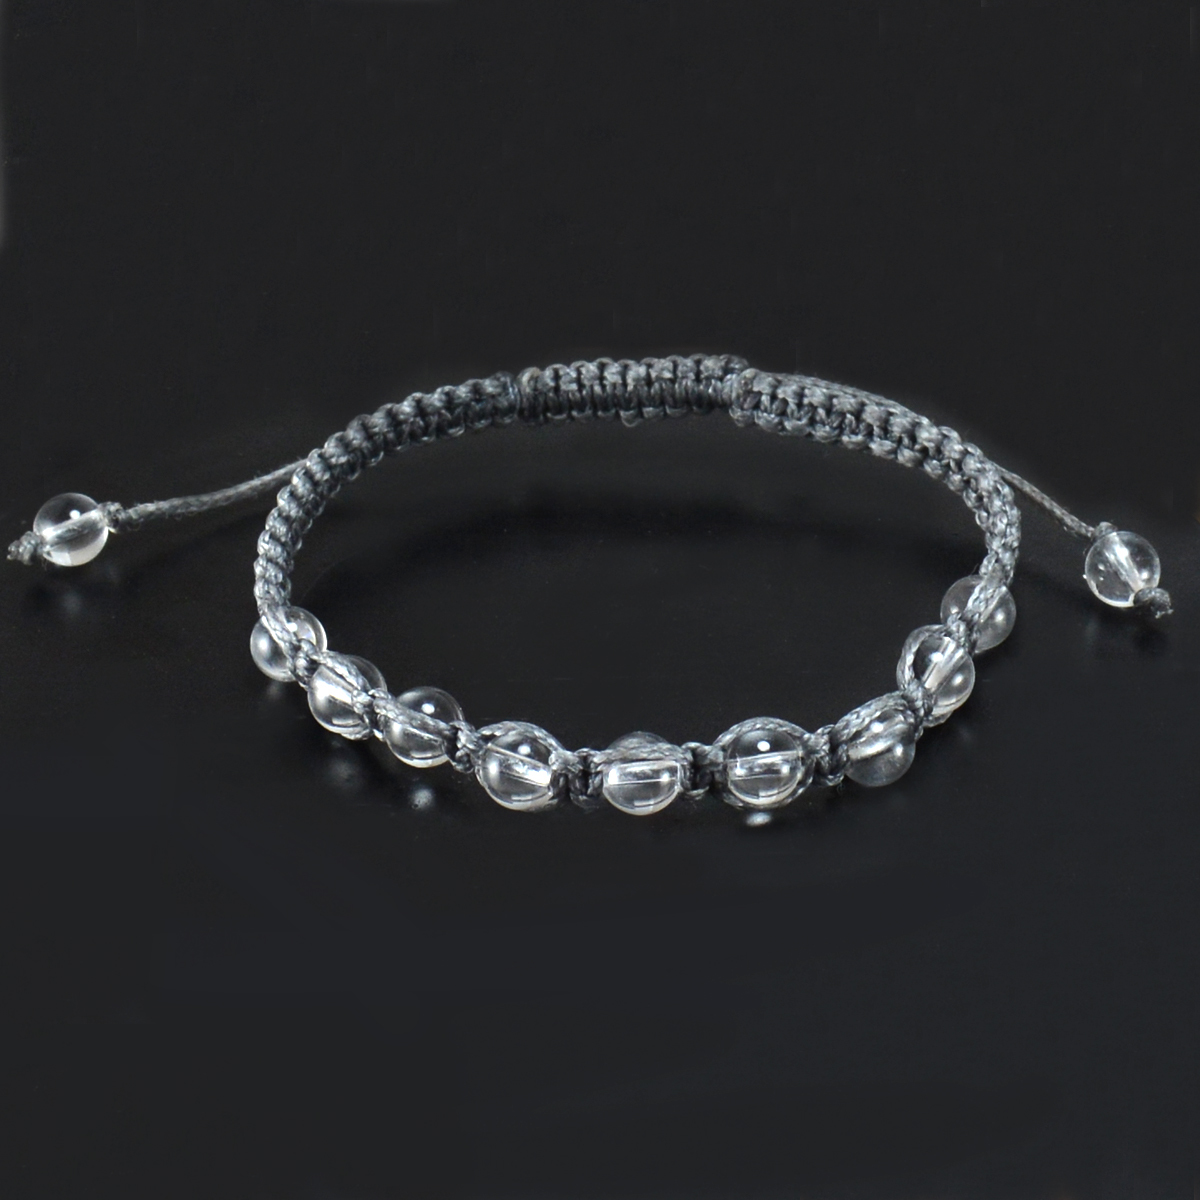 Crystal Quartz Gemstone Bracelet PG-155844